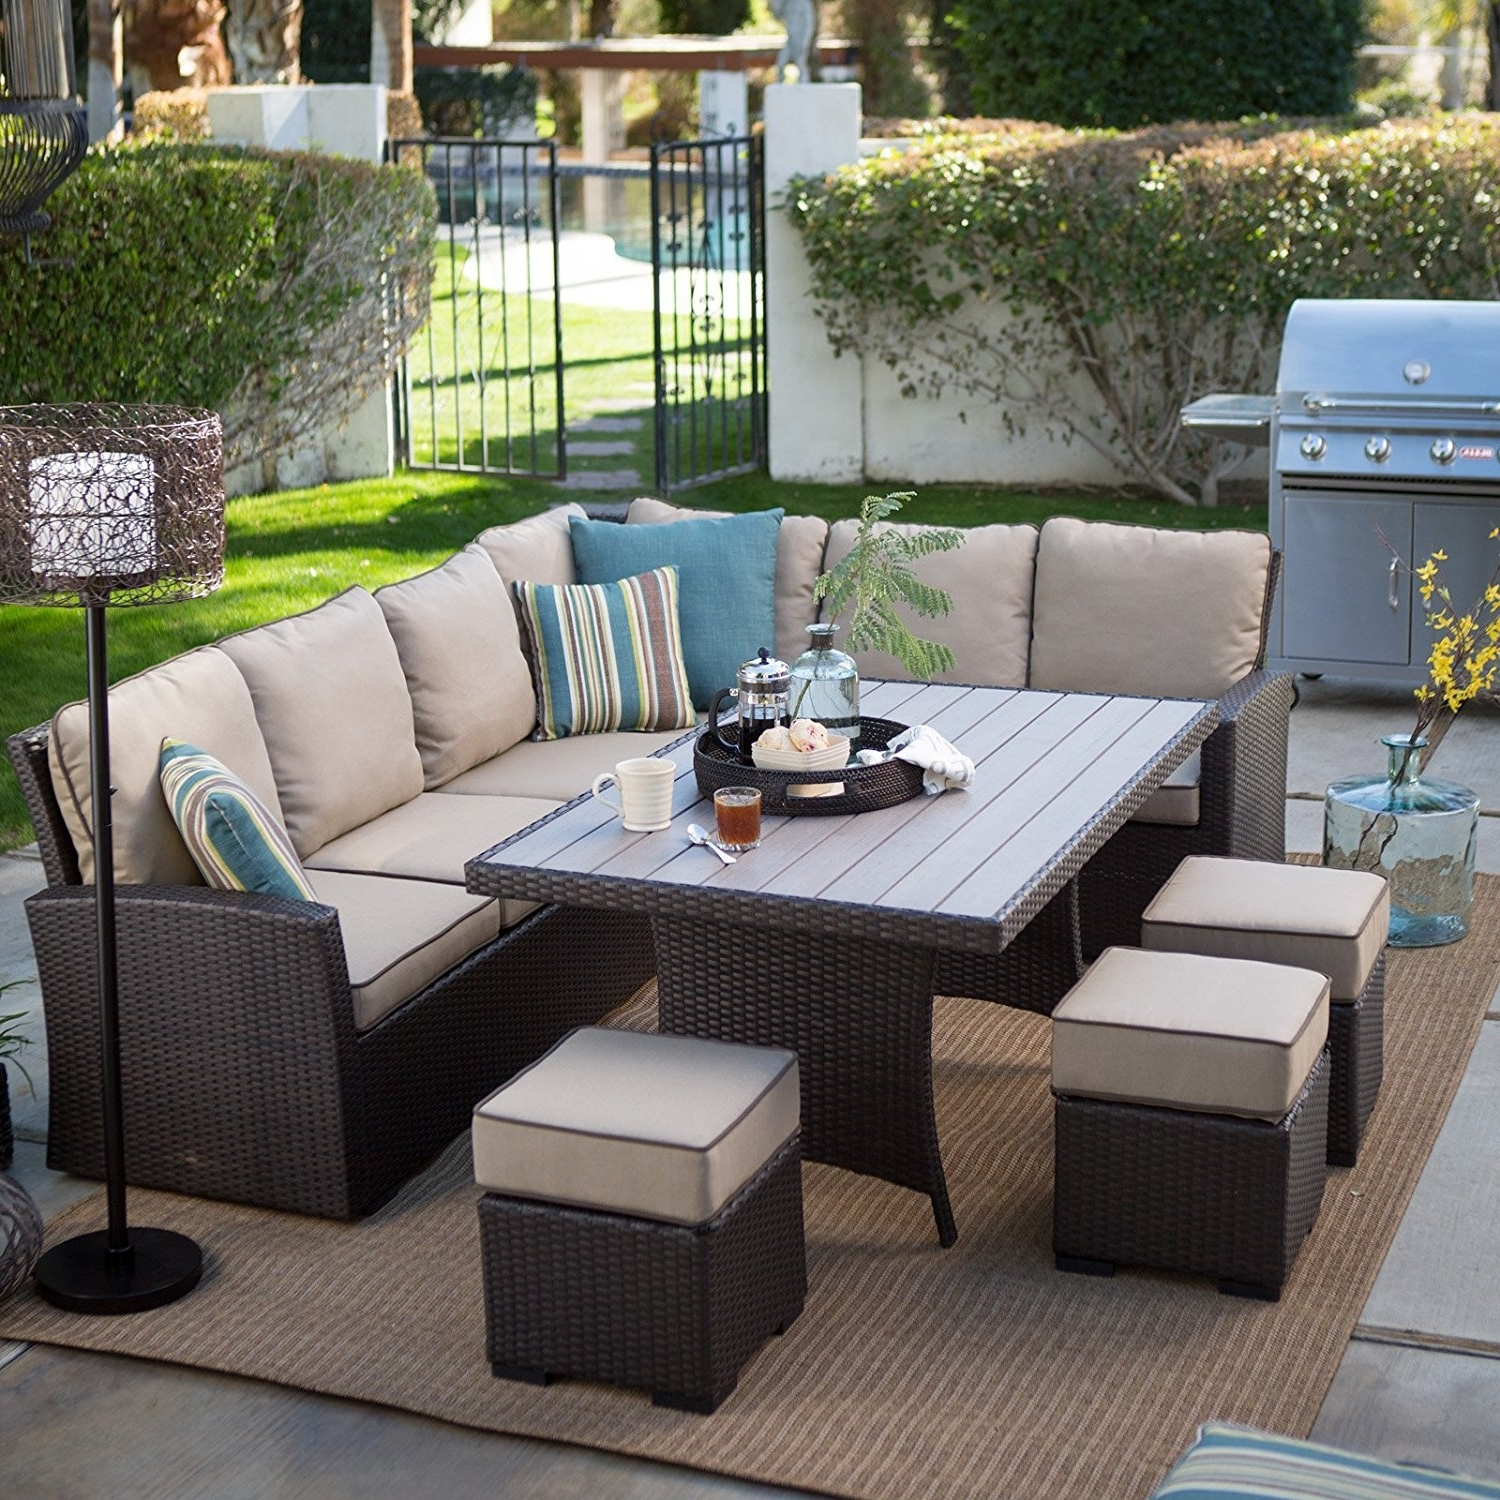 Small Conversation Area Ideas Patio Furniture Walmart Patio Throughout Newest Patio Conversation Sets For Small Spaces (View 6 of 20)